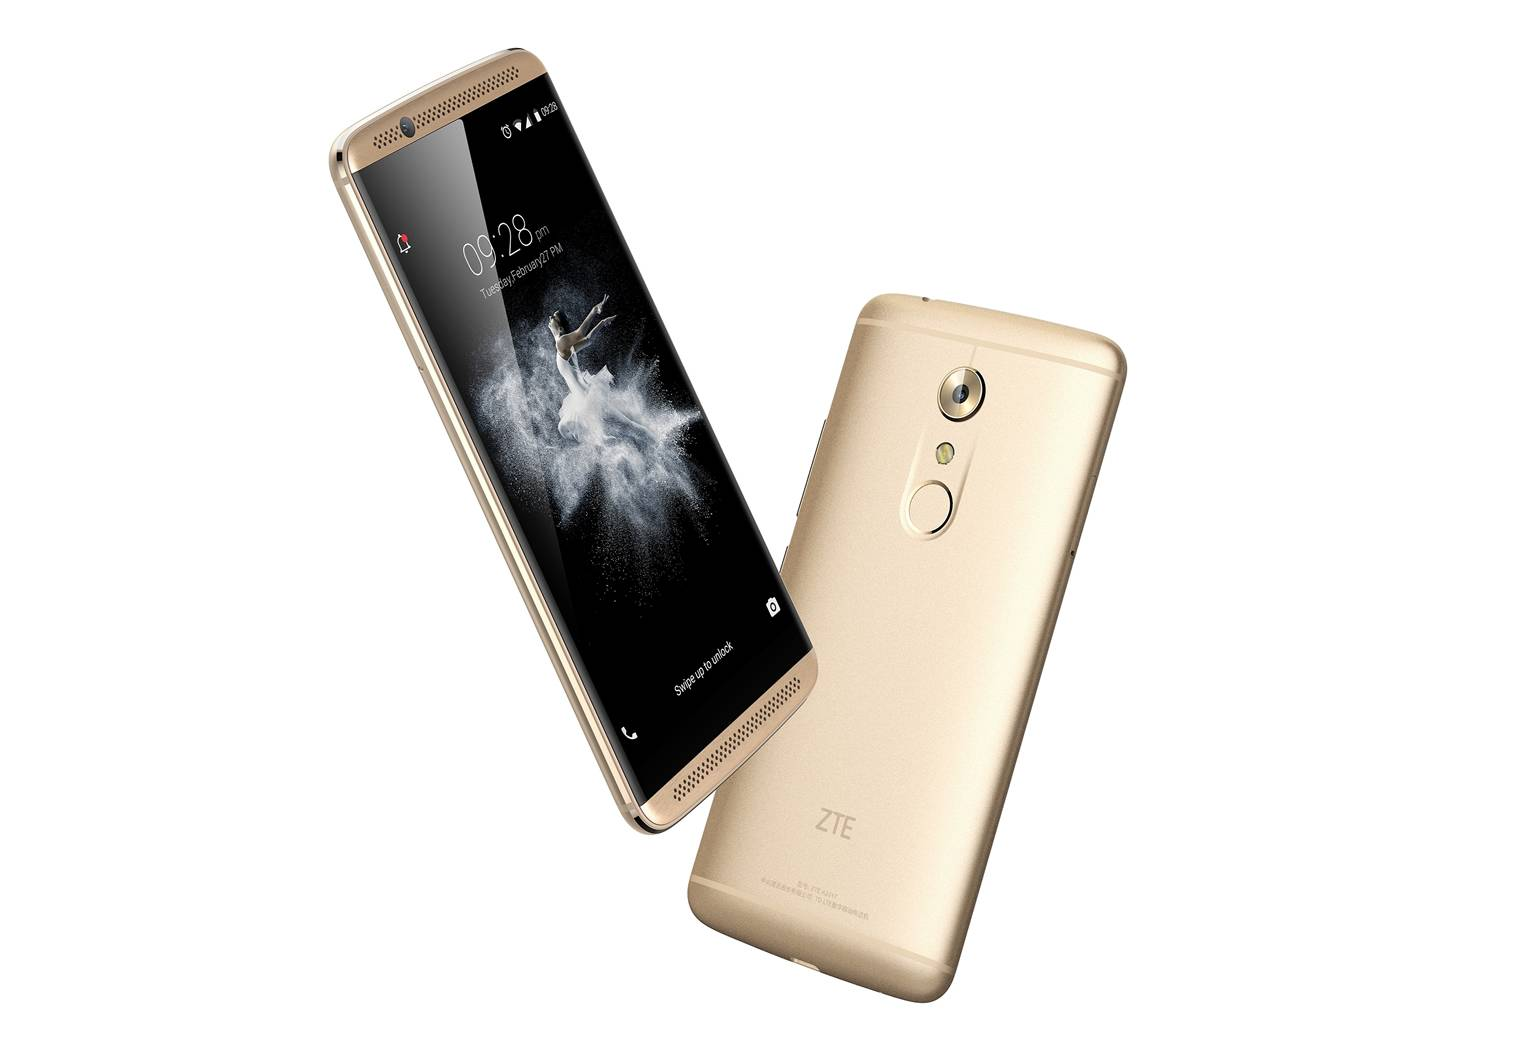 Axon 7 is ZTE's newest flagship, great specs, affordable